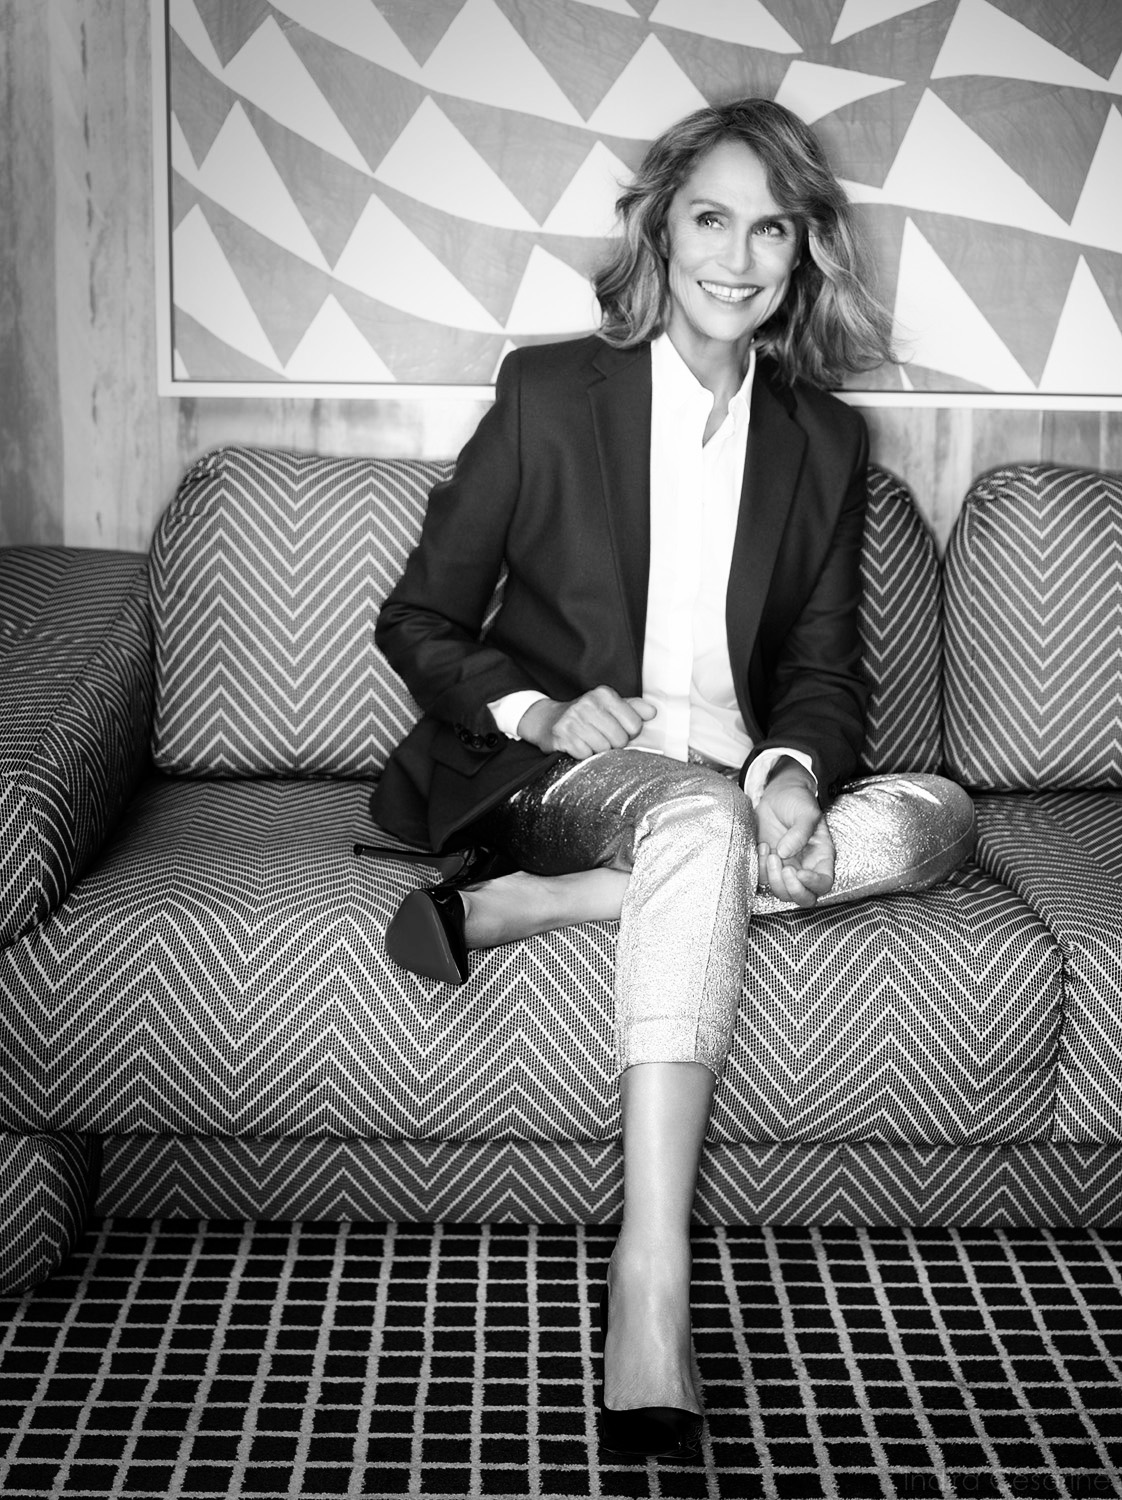 Lauren-Hutton-Photography-by-Indira-Cesarine-007-bw.jpg